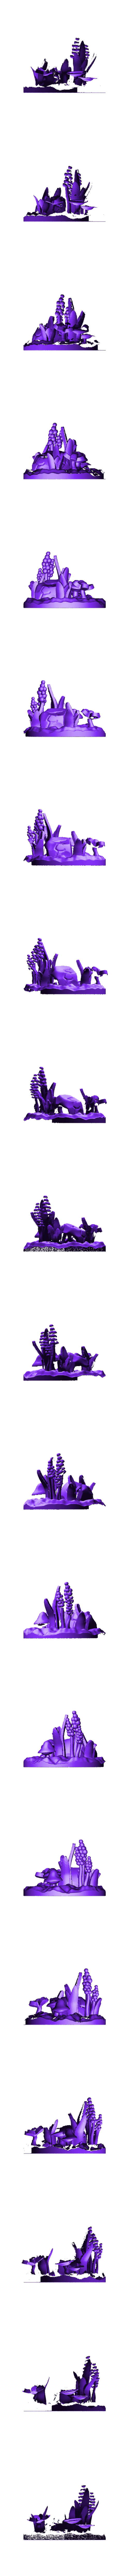 Small_Forest_1_1.1.1.stl Download free STL file Forest Plants - Flowers, Mushrooms, and Rocks • 3D print template, BellForged